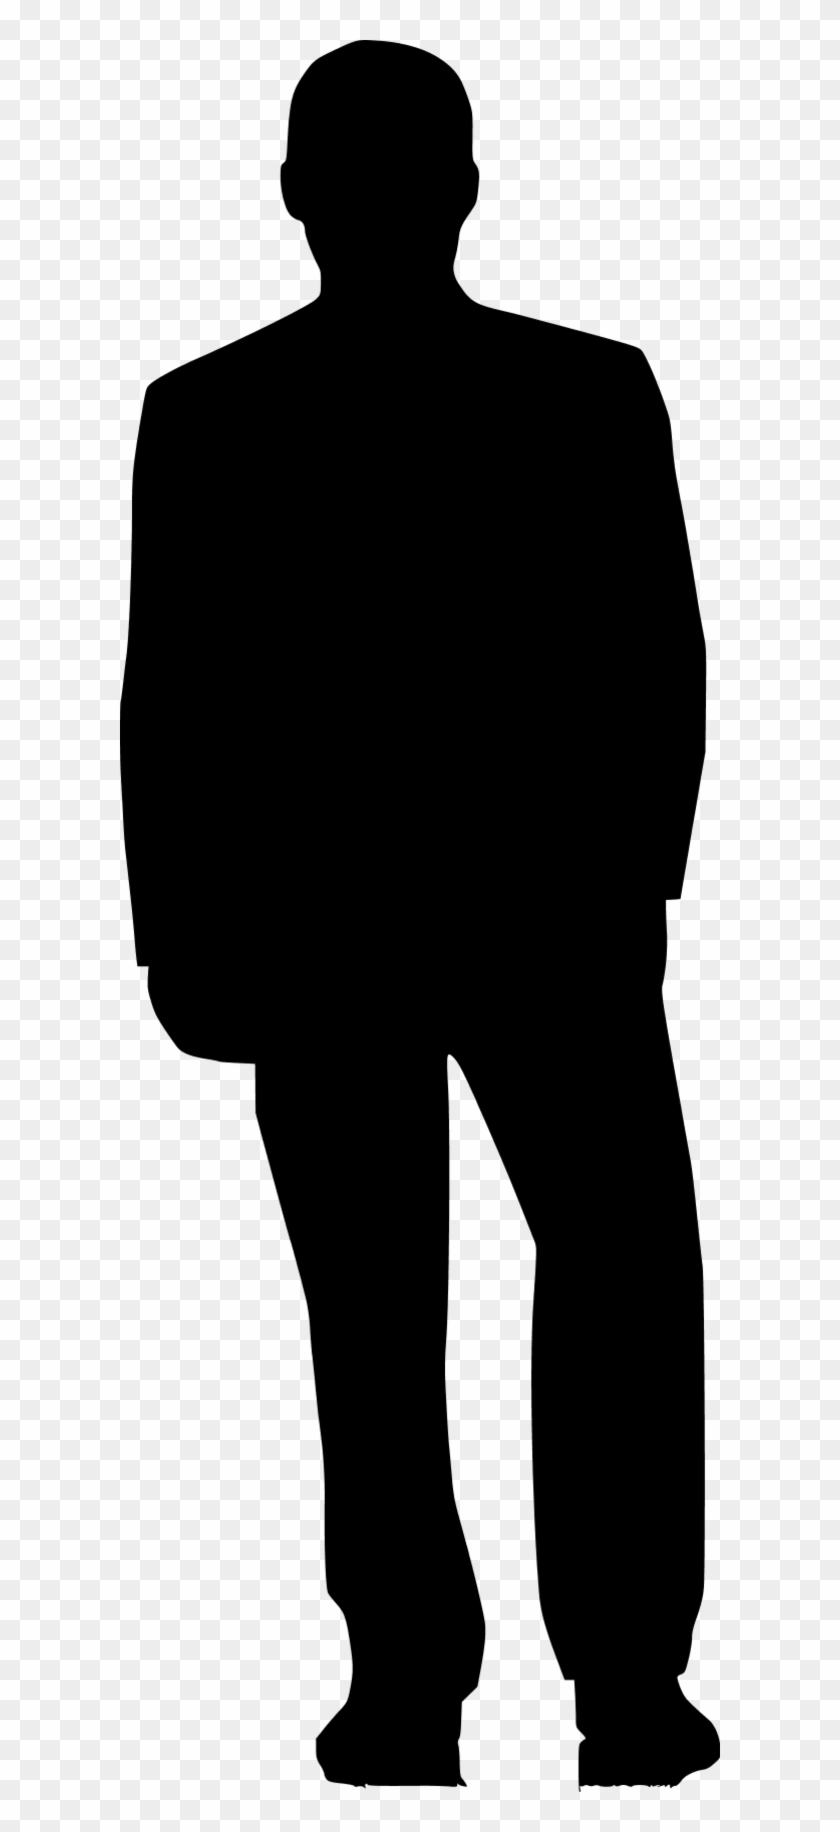 Person Back Silhouette Png #115513